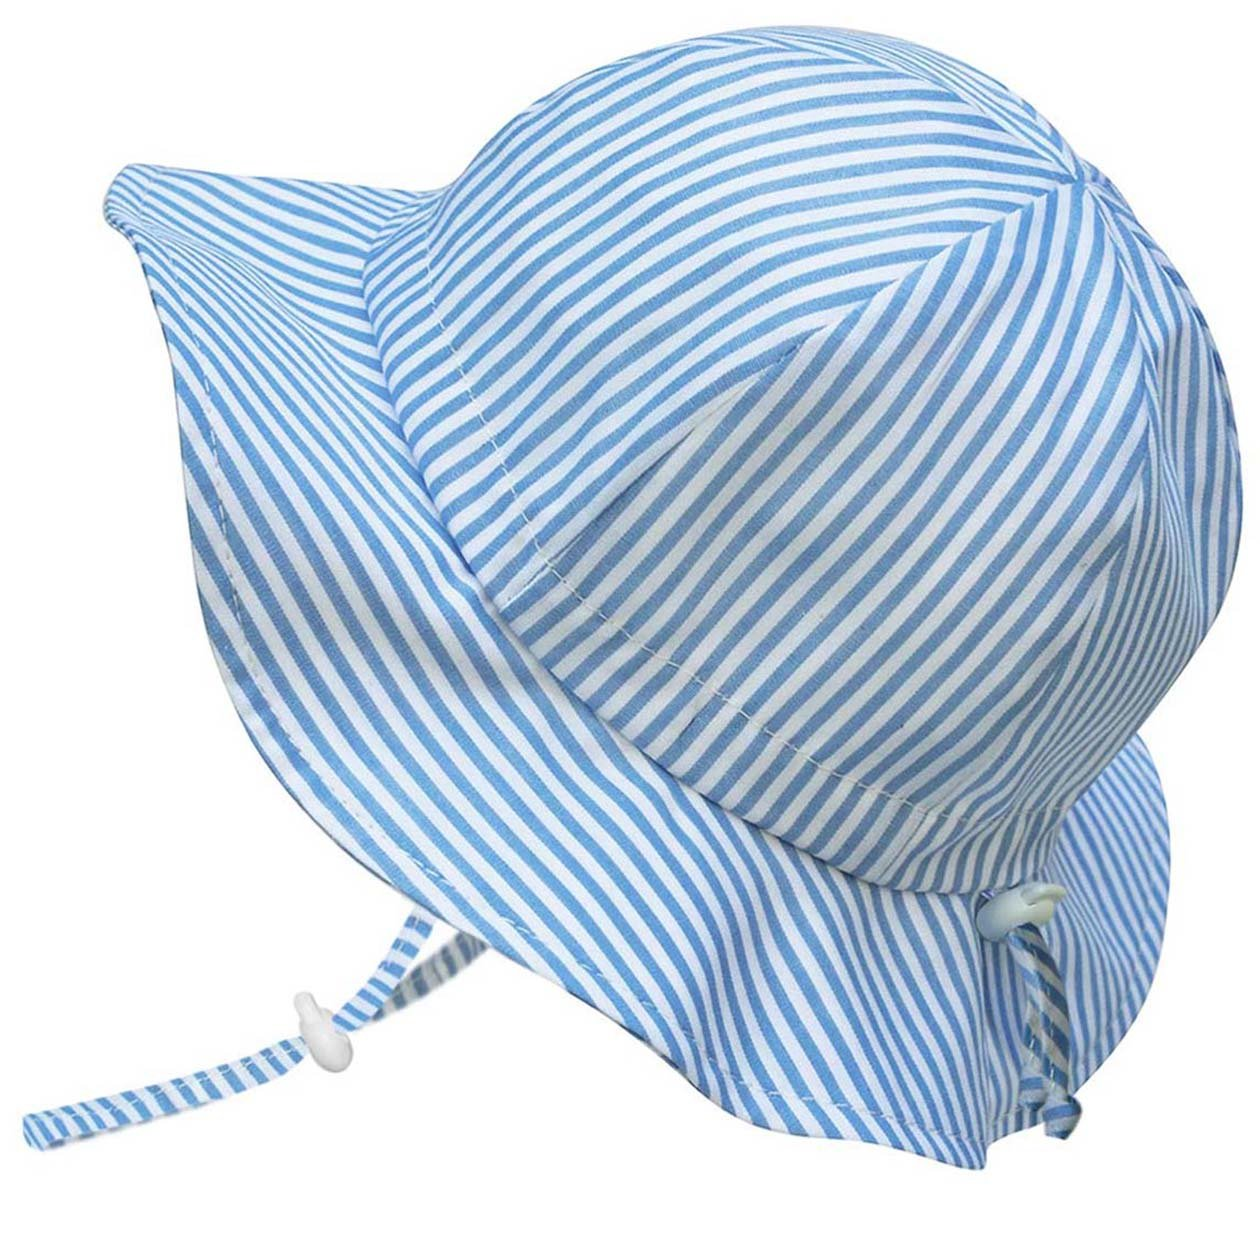 d5ed7f5c137 Details about Twinklebelle Toddler Boys Kids Breathable Sun Hats 50 UPF